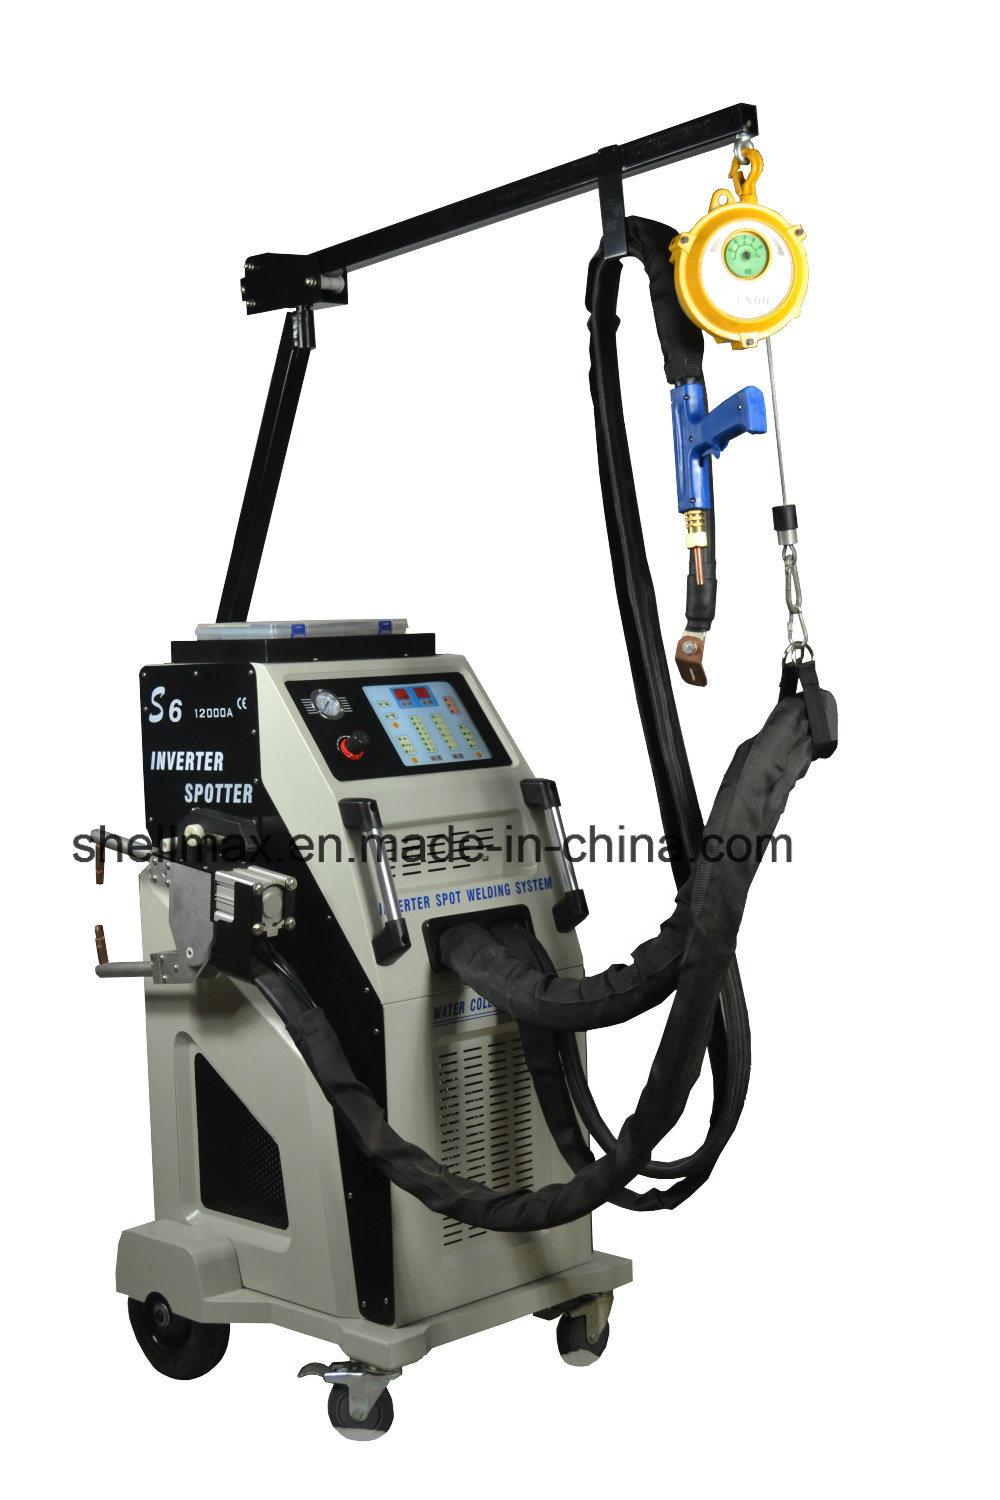 13000A IGBT Inverter Spot Welder for Auto Repair S6-Lx Gun